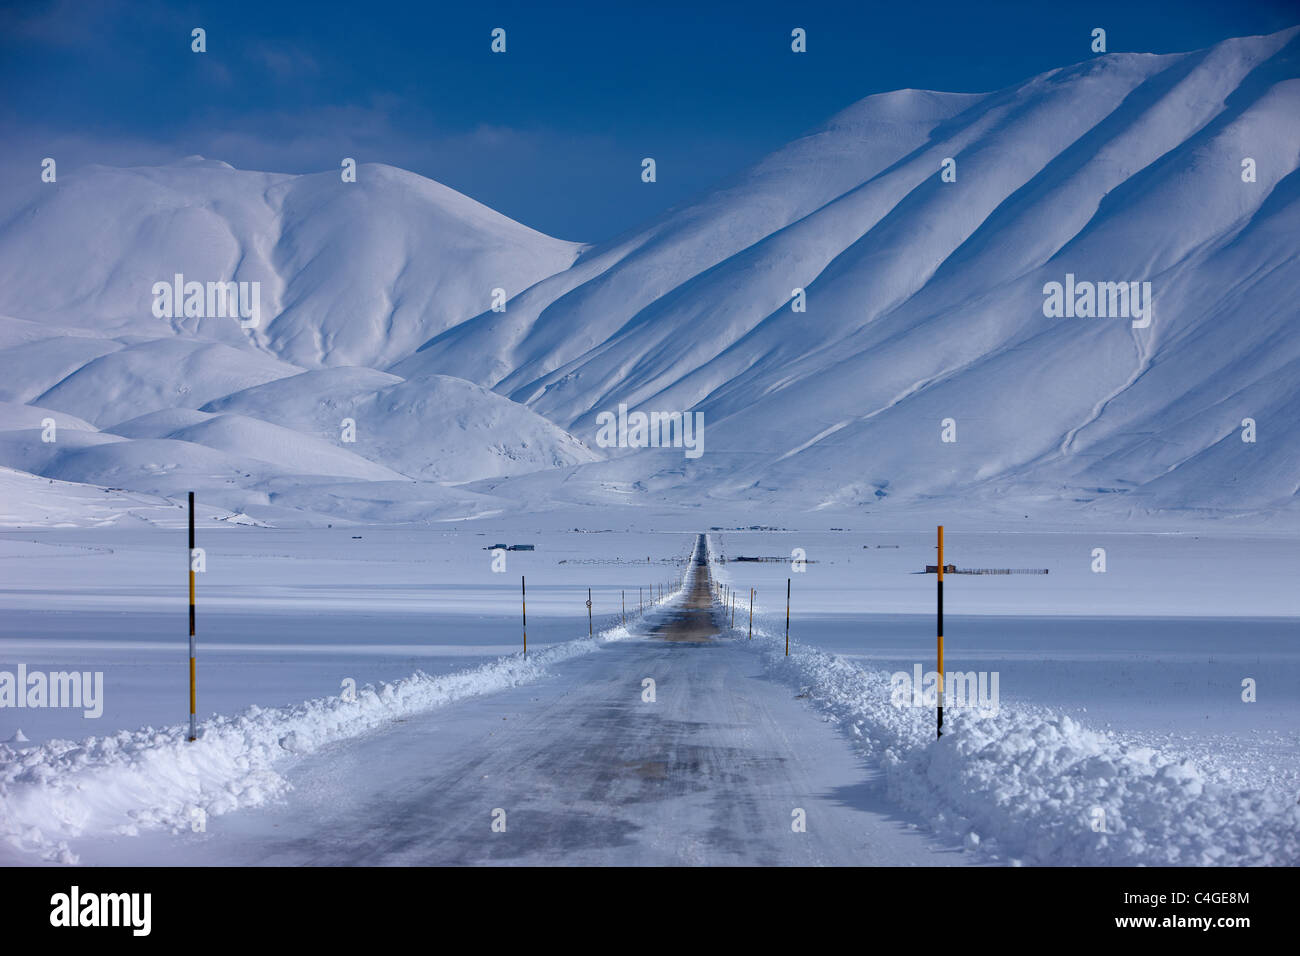 the road across the Piano Grande in winter, Monti Sibillini National Park, Umbria, Italy - Stock Image